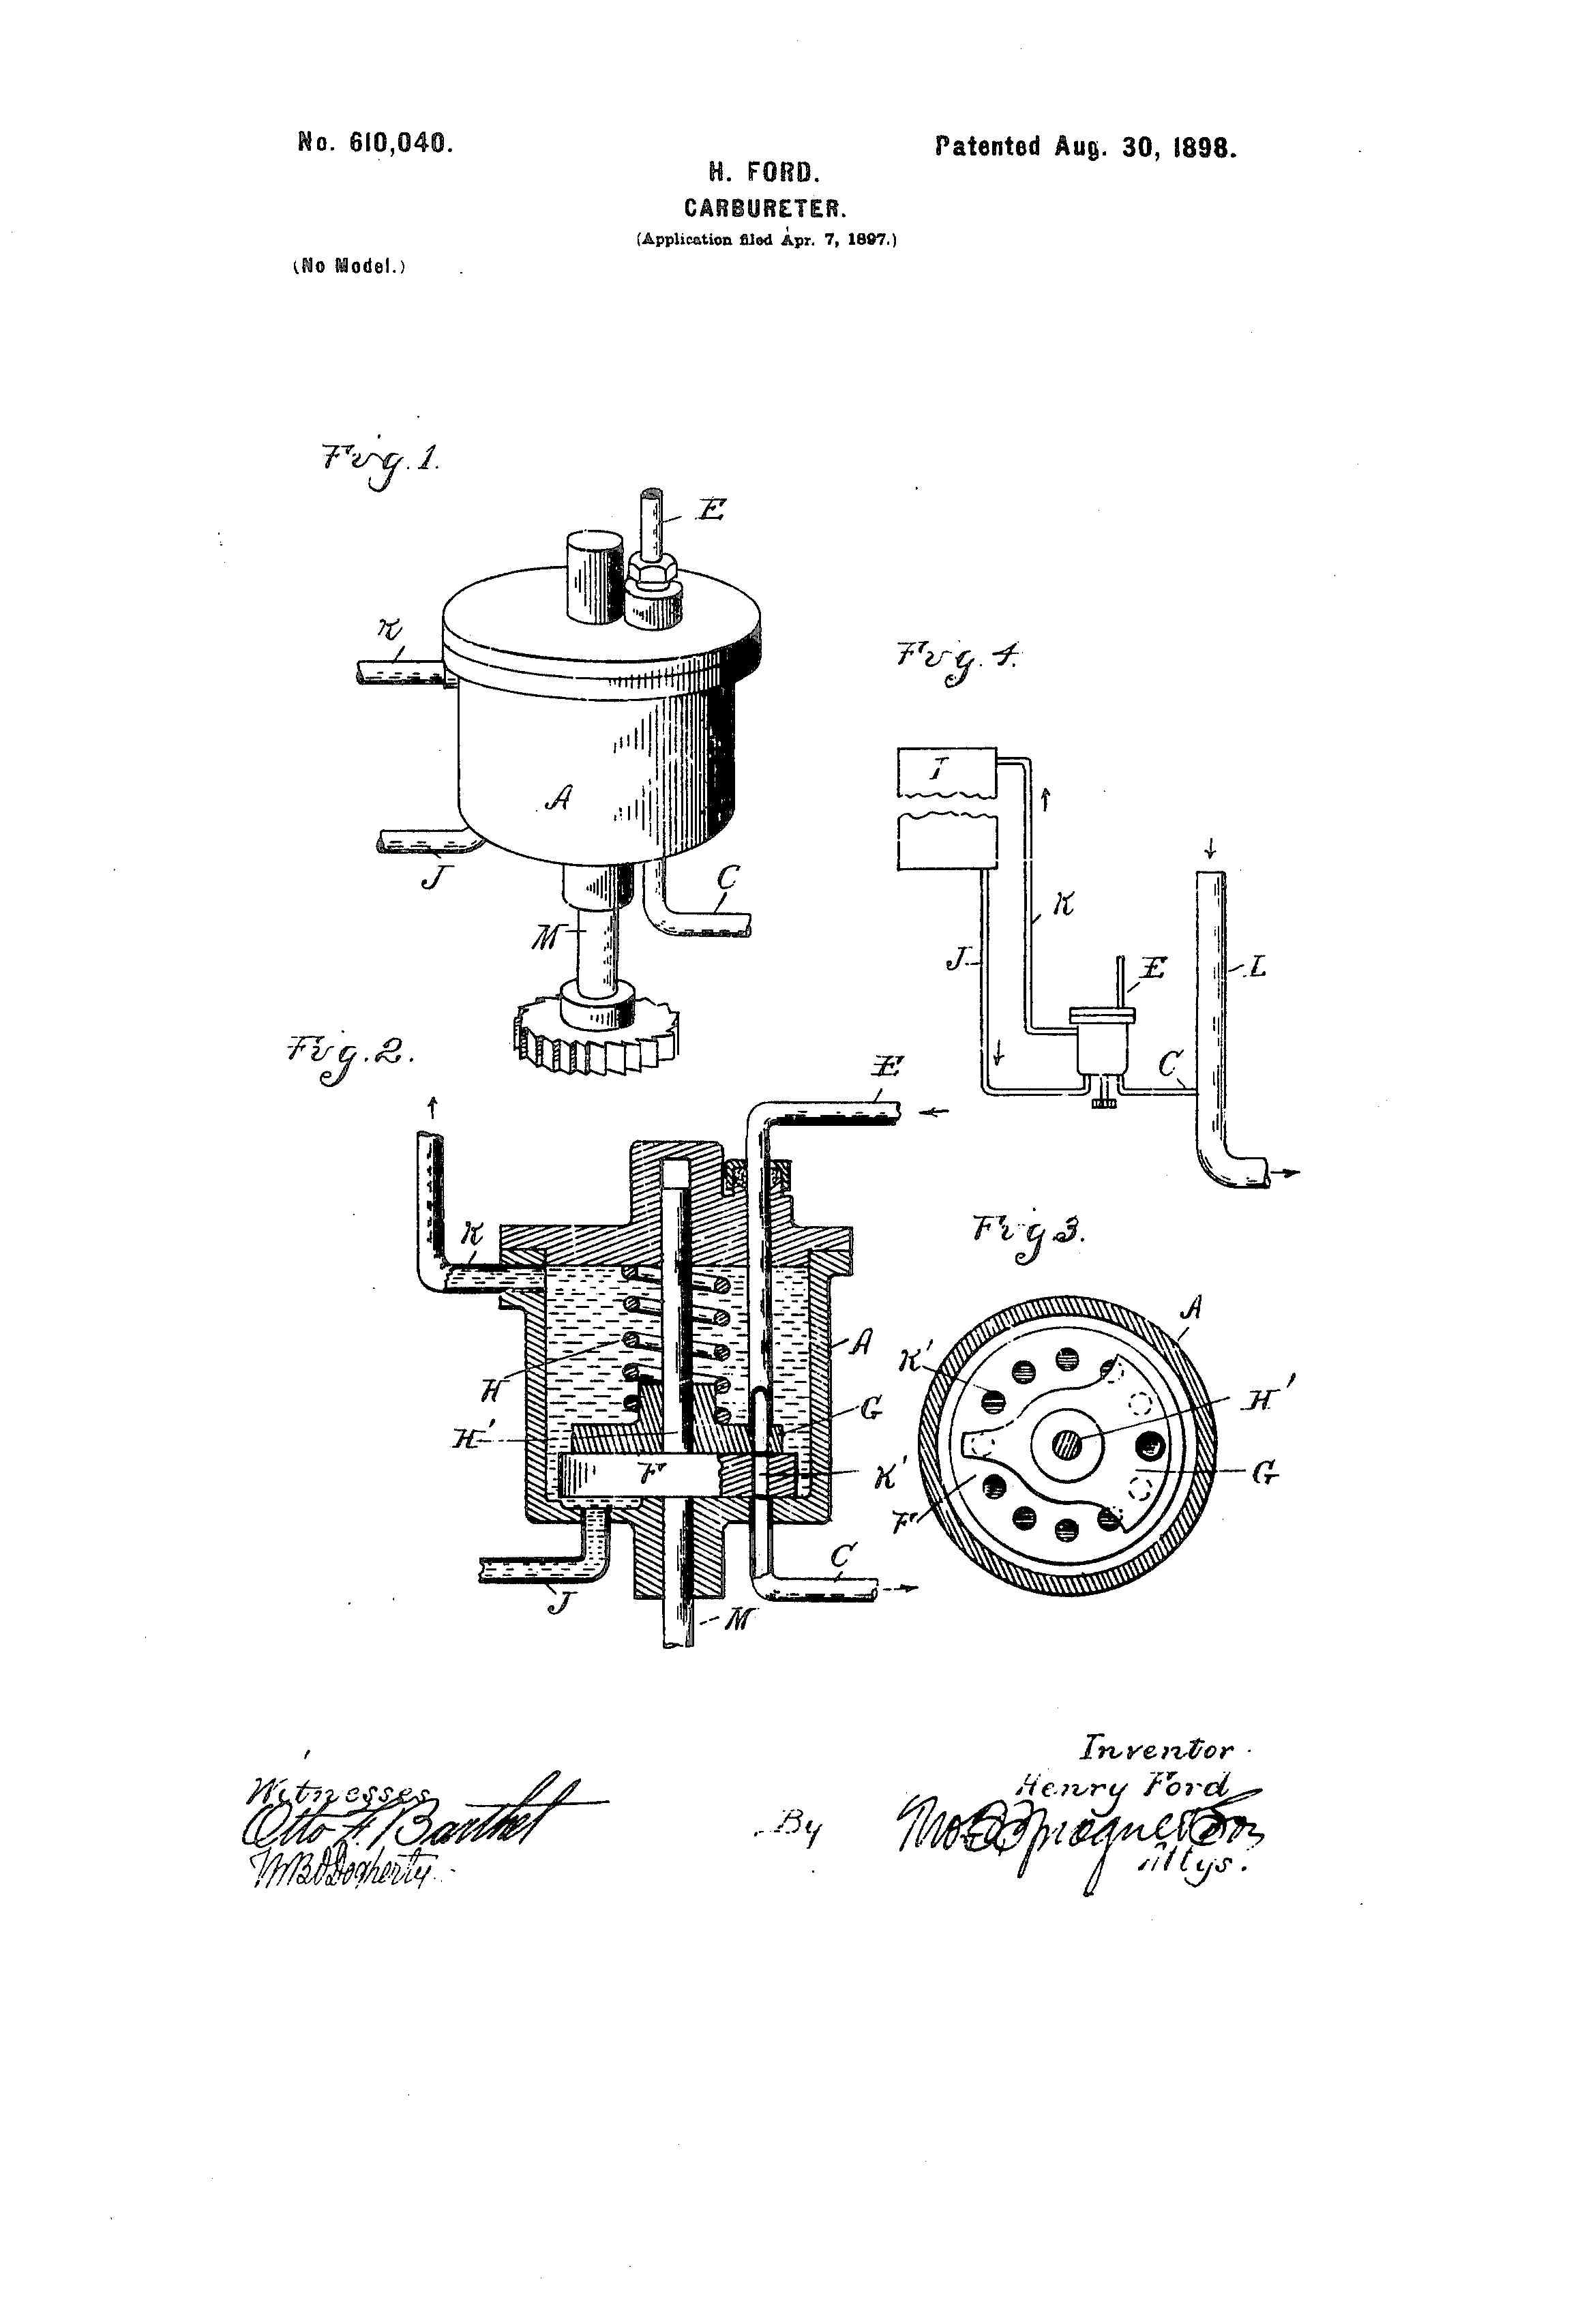 Henry Ford's 1897 patent for a carburetor.